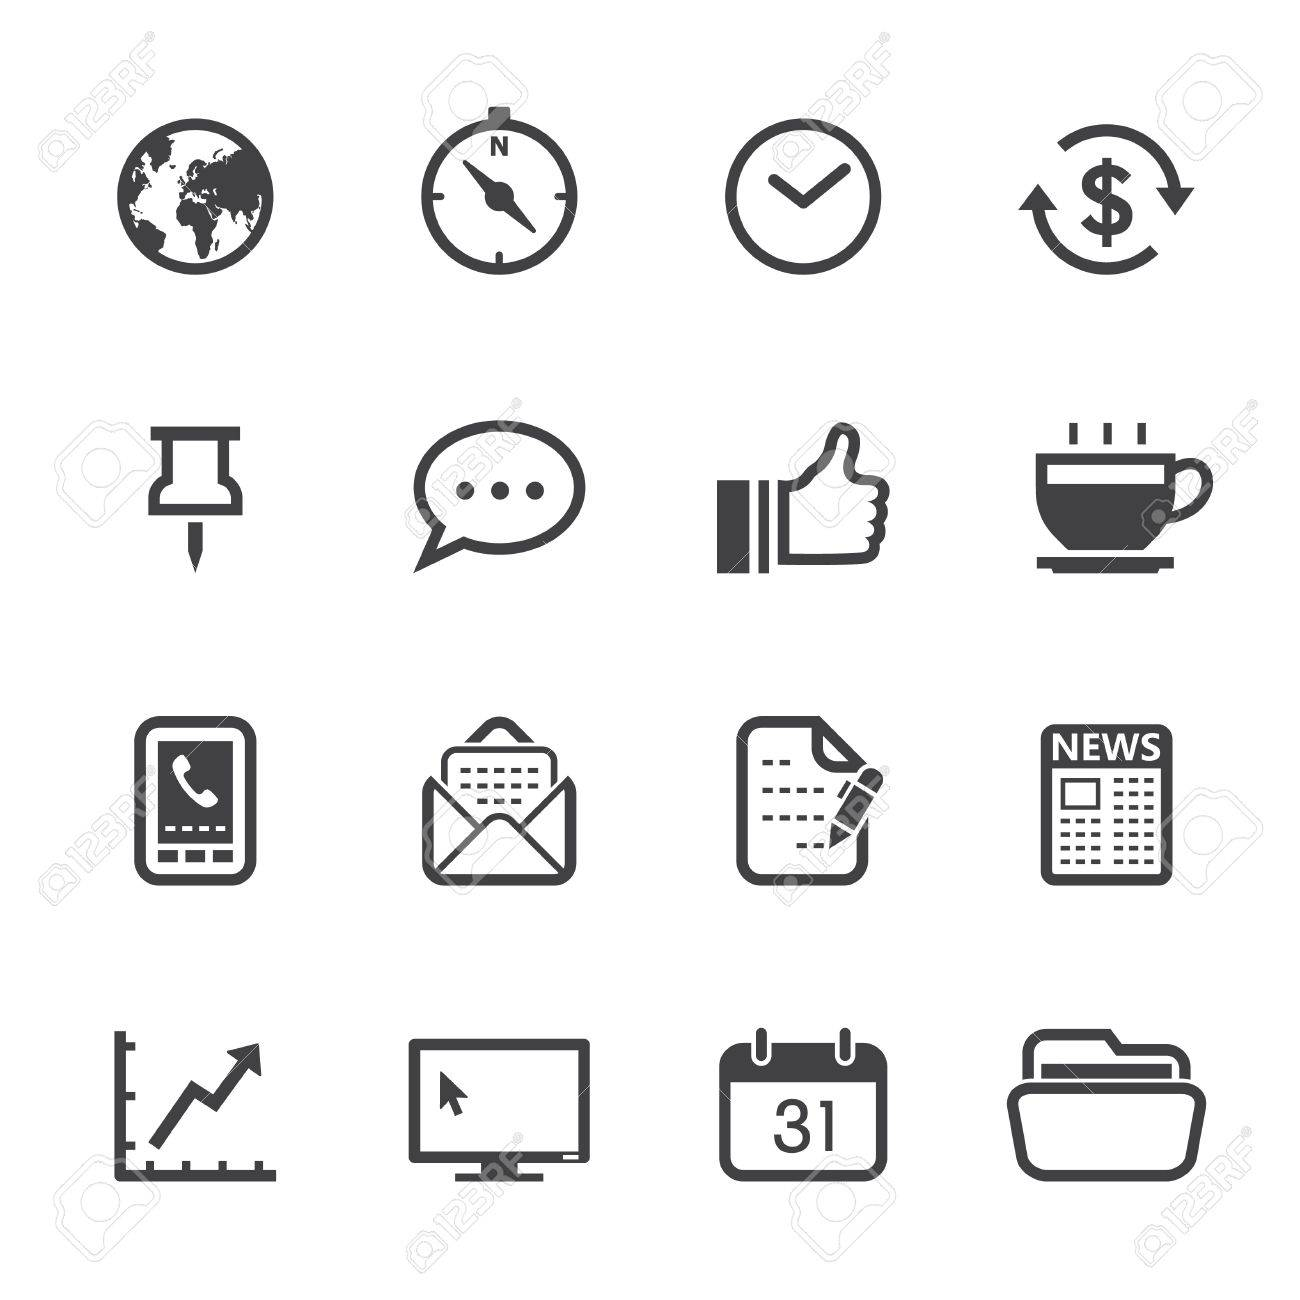 Business Icons and Office Icons with White Background Stock Vector - 20232844